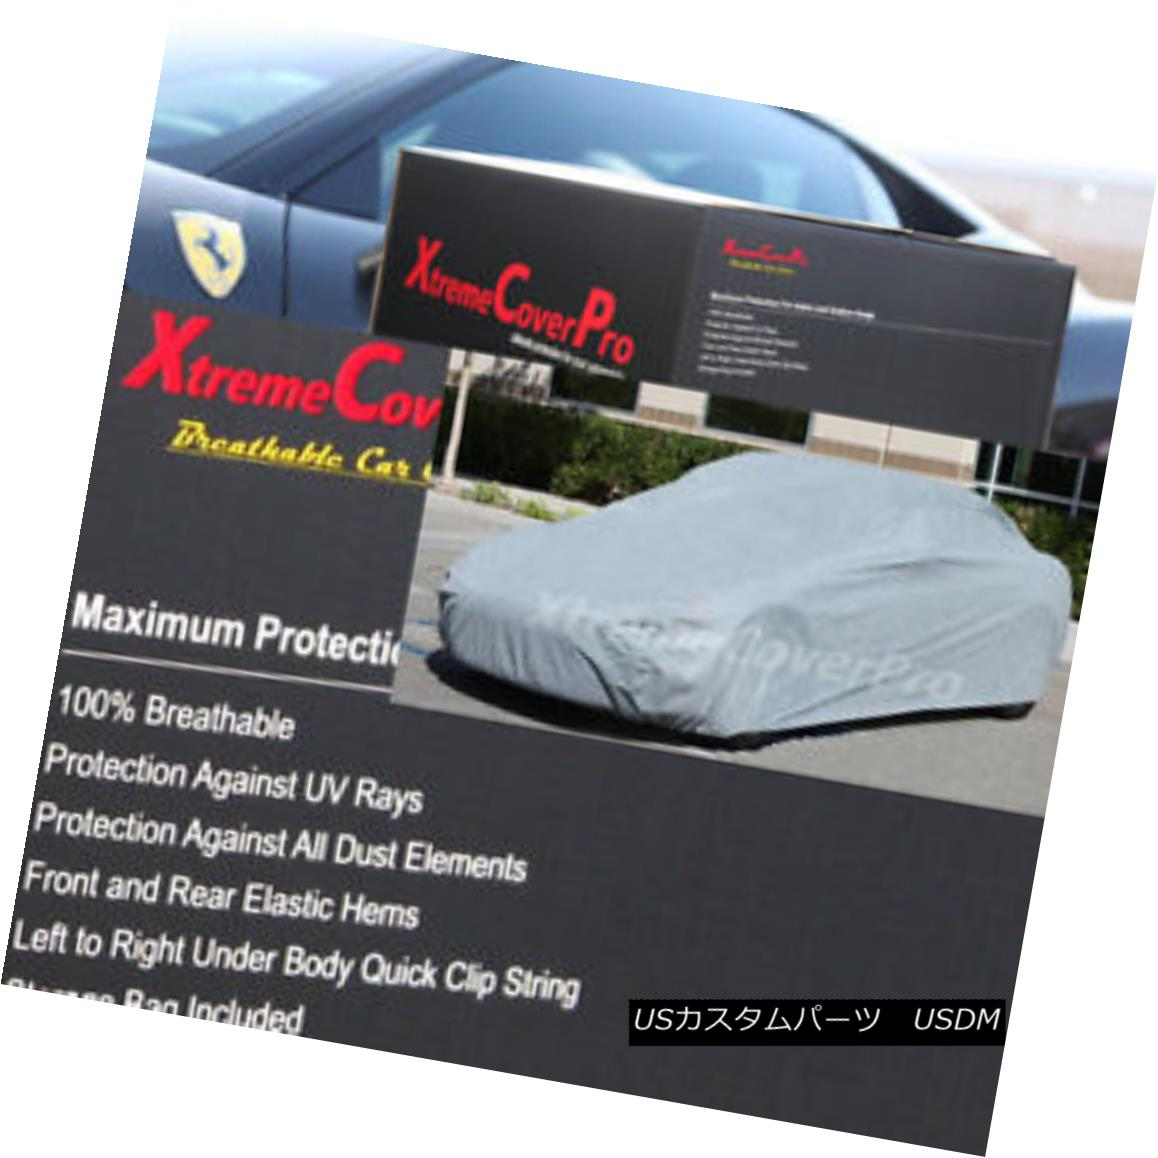 カーカバー 2017 2018 MERCEDES-BENZ SLC300 SLC43 BREATHABLE CAR COVER - GREY 2017 2018 MERCEDES-BENZ SLC300 SLC43ブレーキカーカバー - グレー